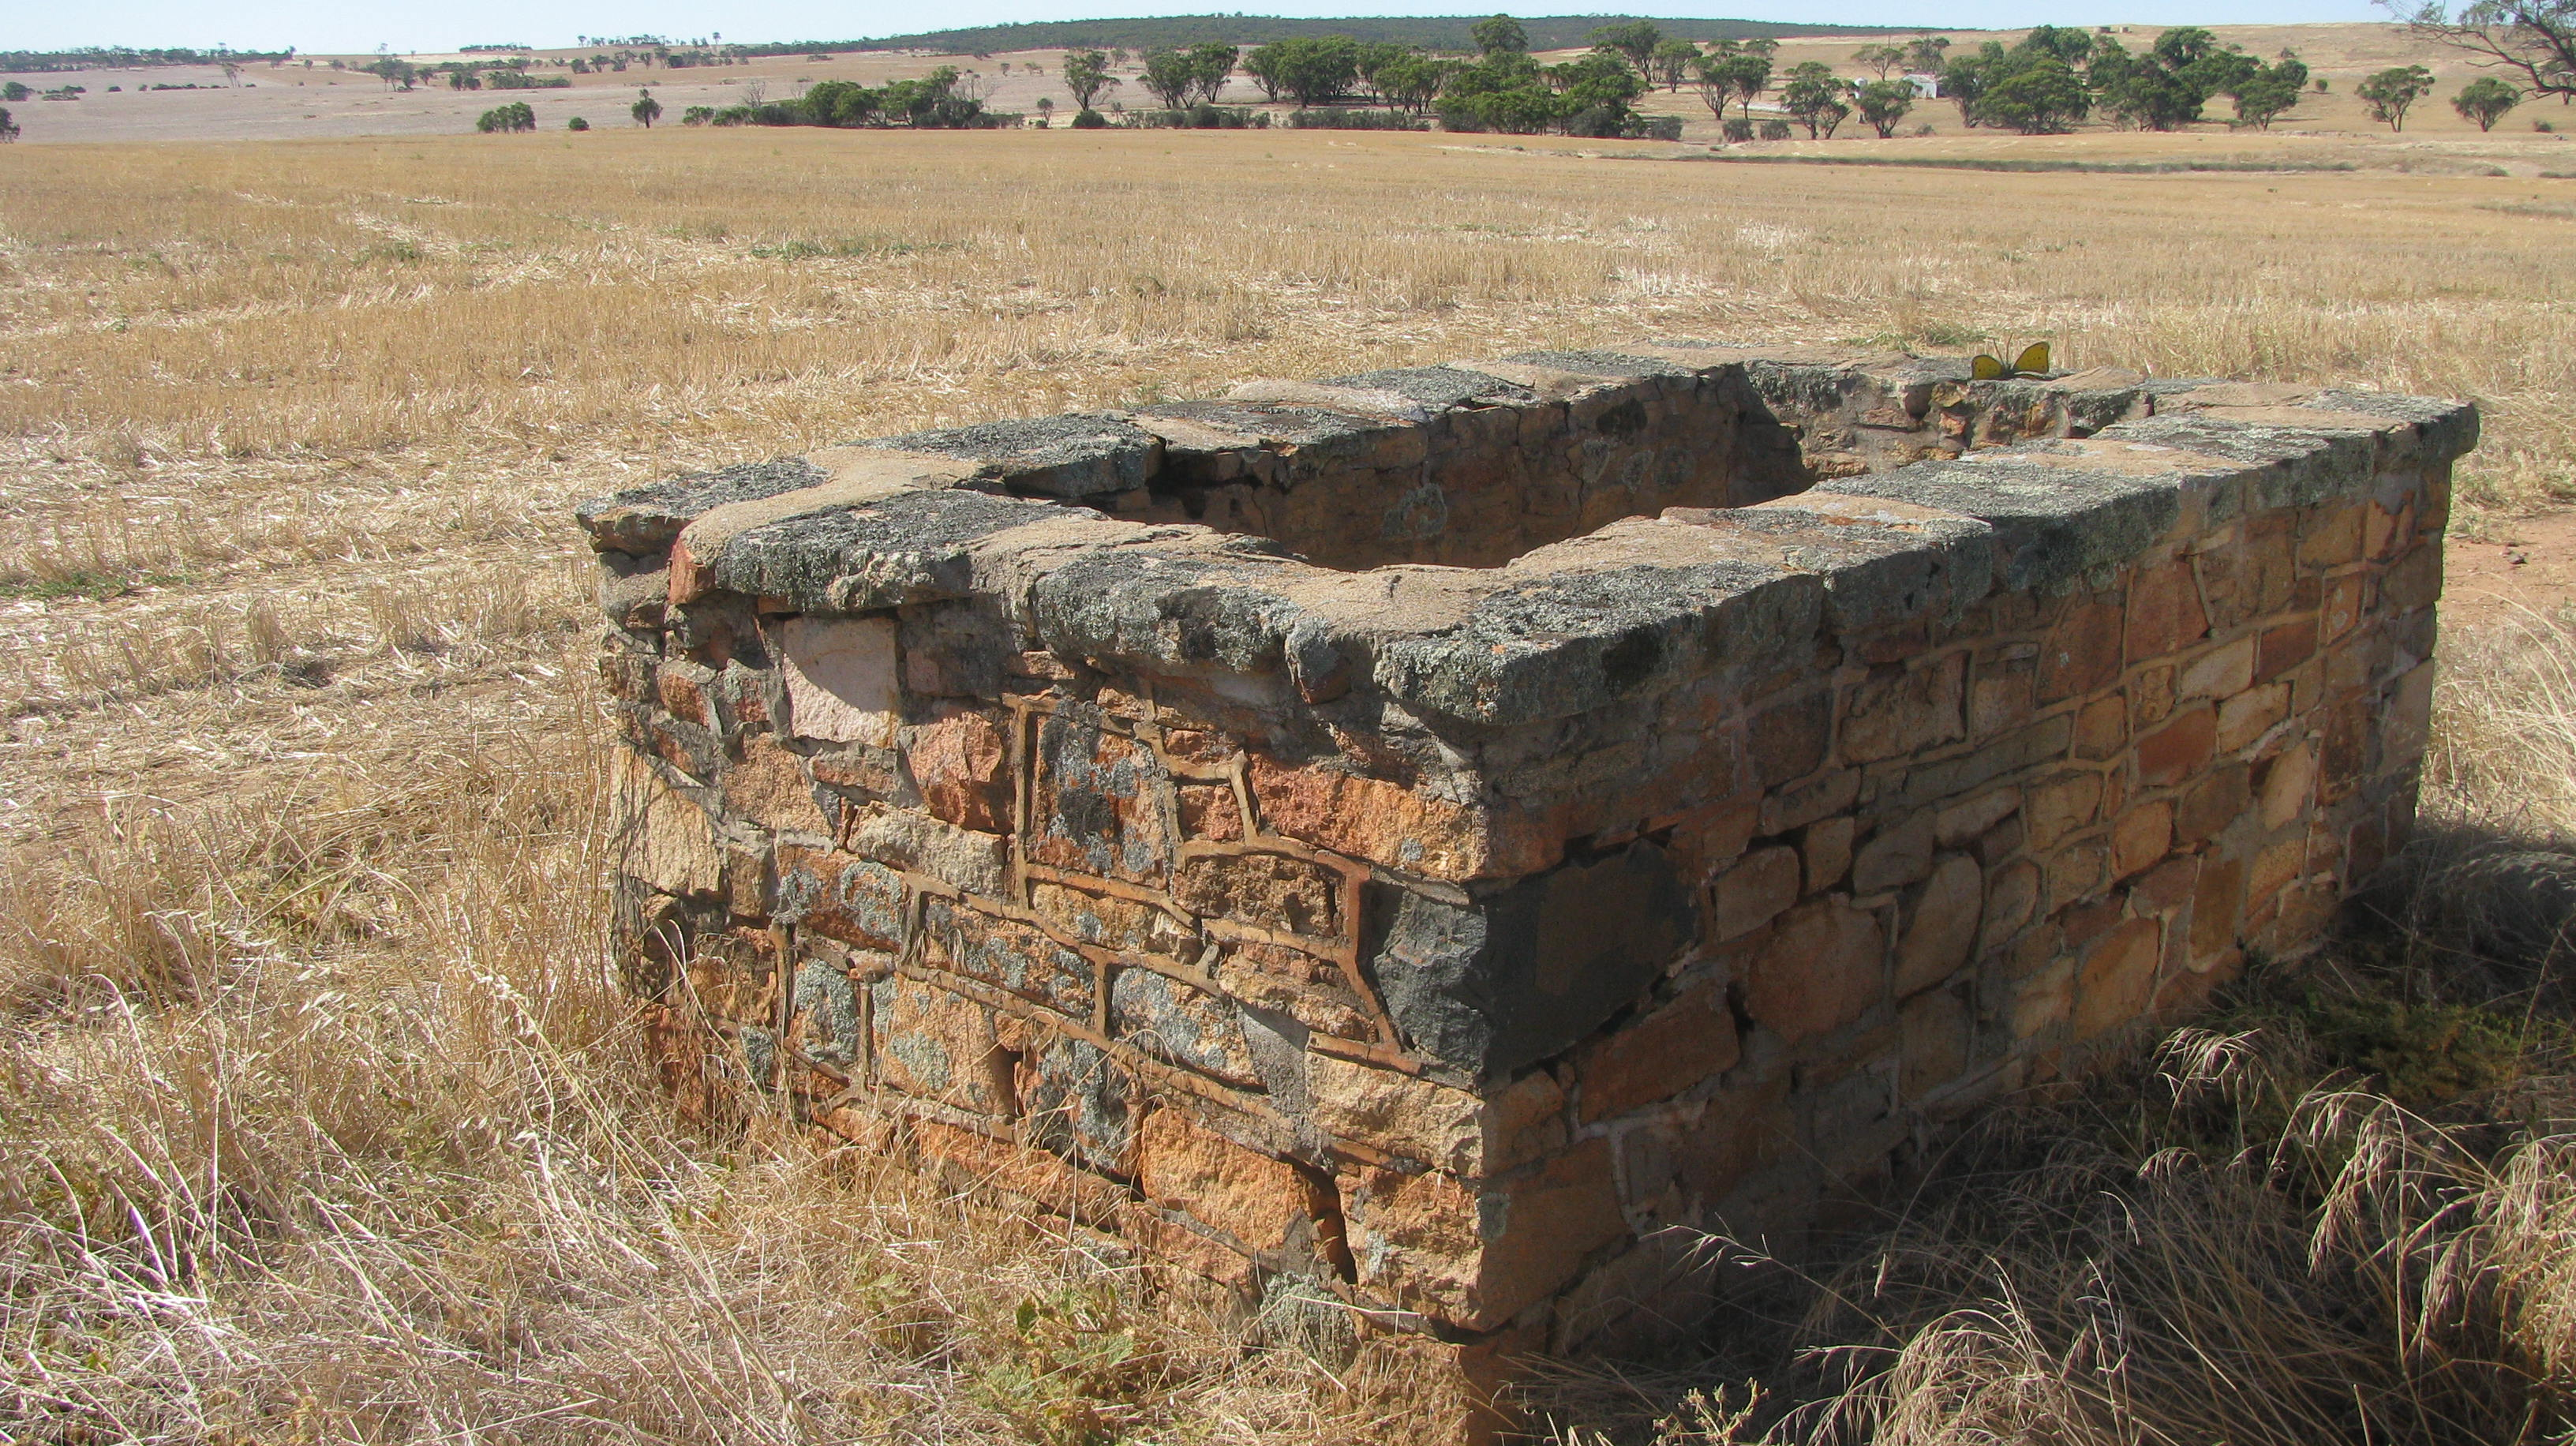 The Shepherd's Grave with bare paddock in the background, Goomalling WA